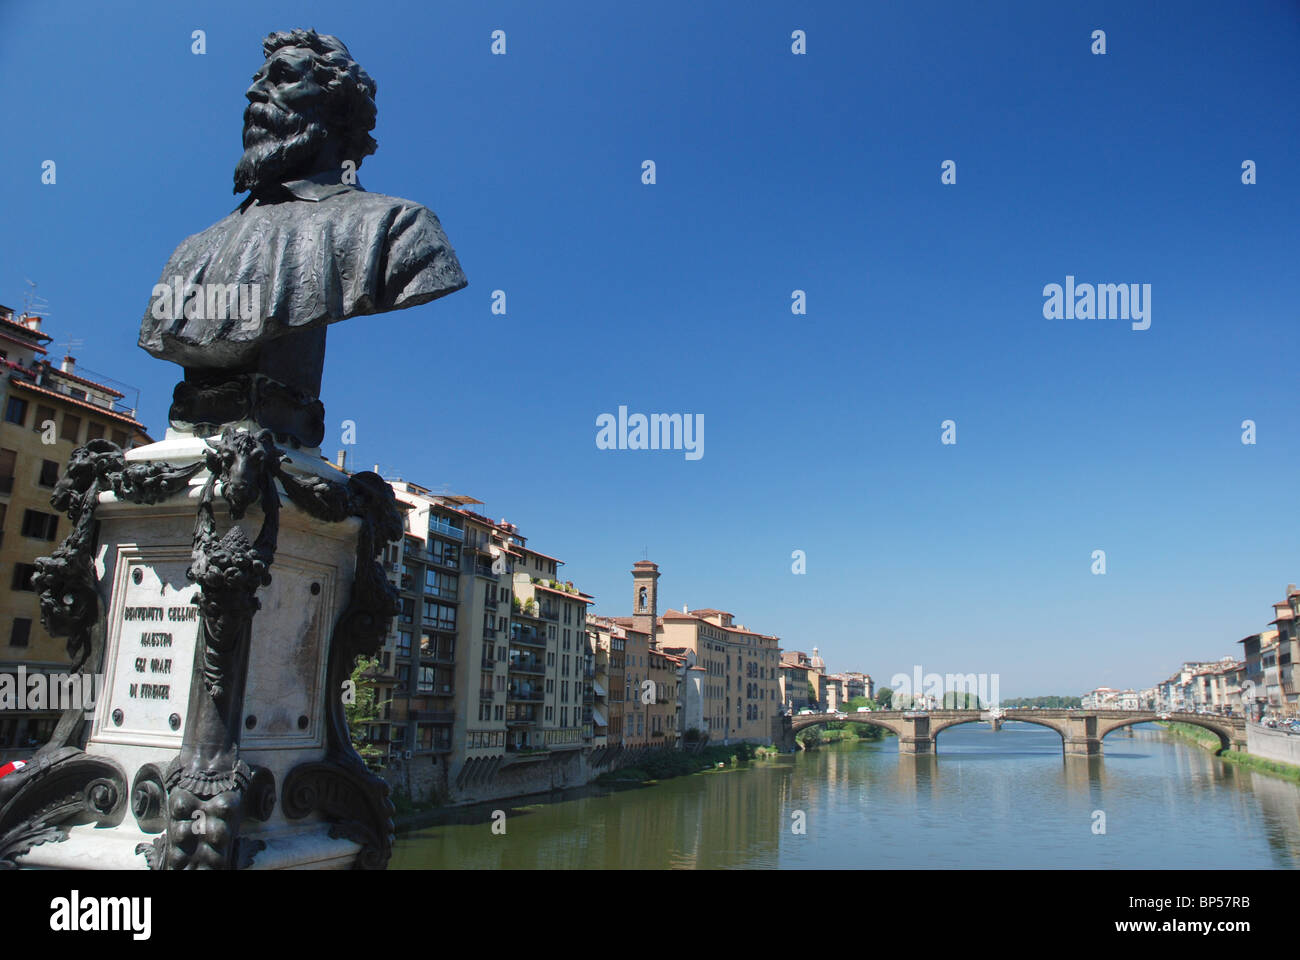 Statue of Benvenuto Cellini on Ponte Vecchio Bridge, Florence, Italy. - Stock Image